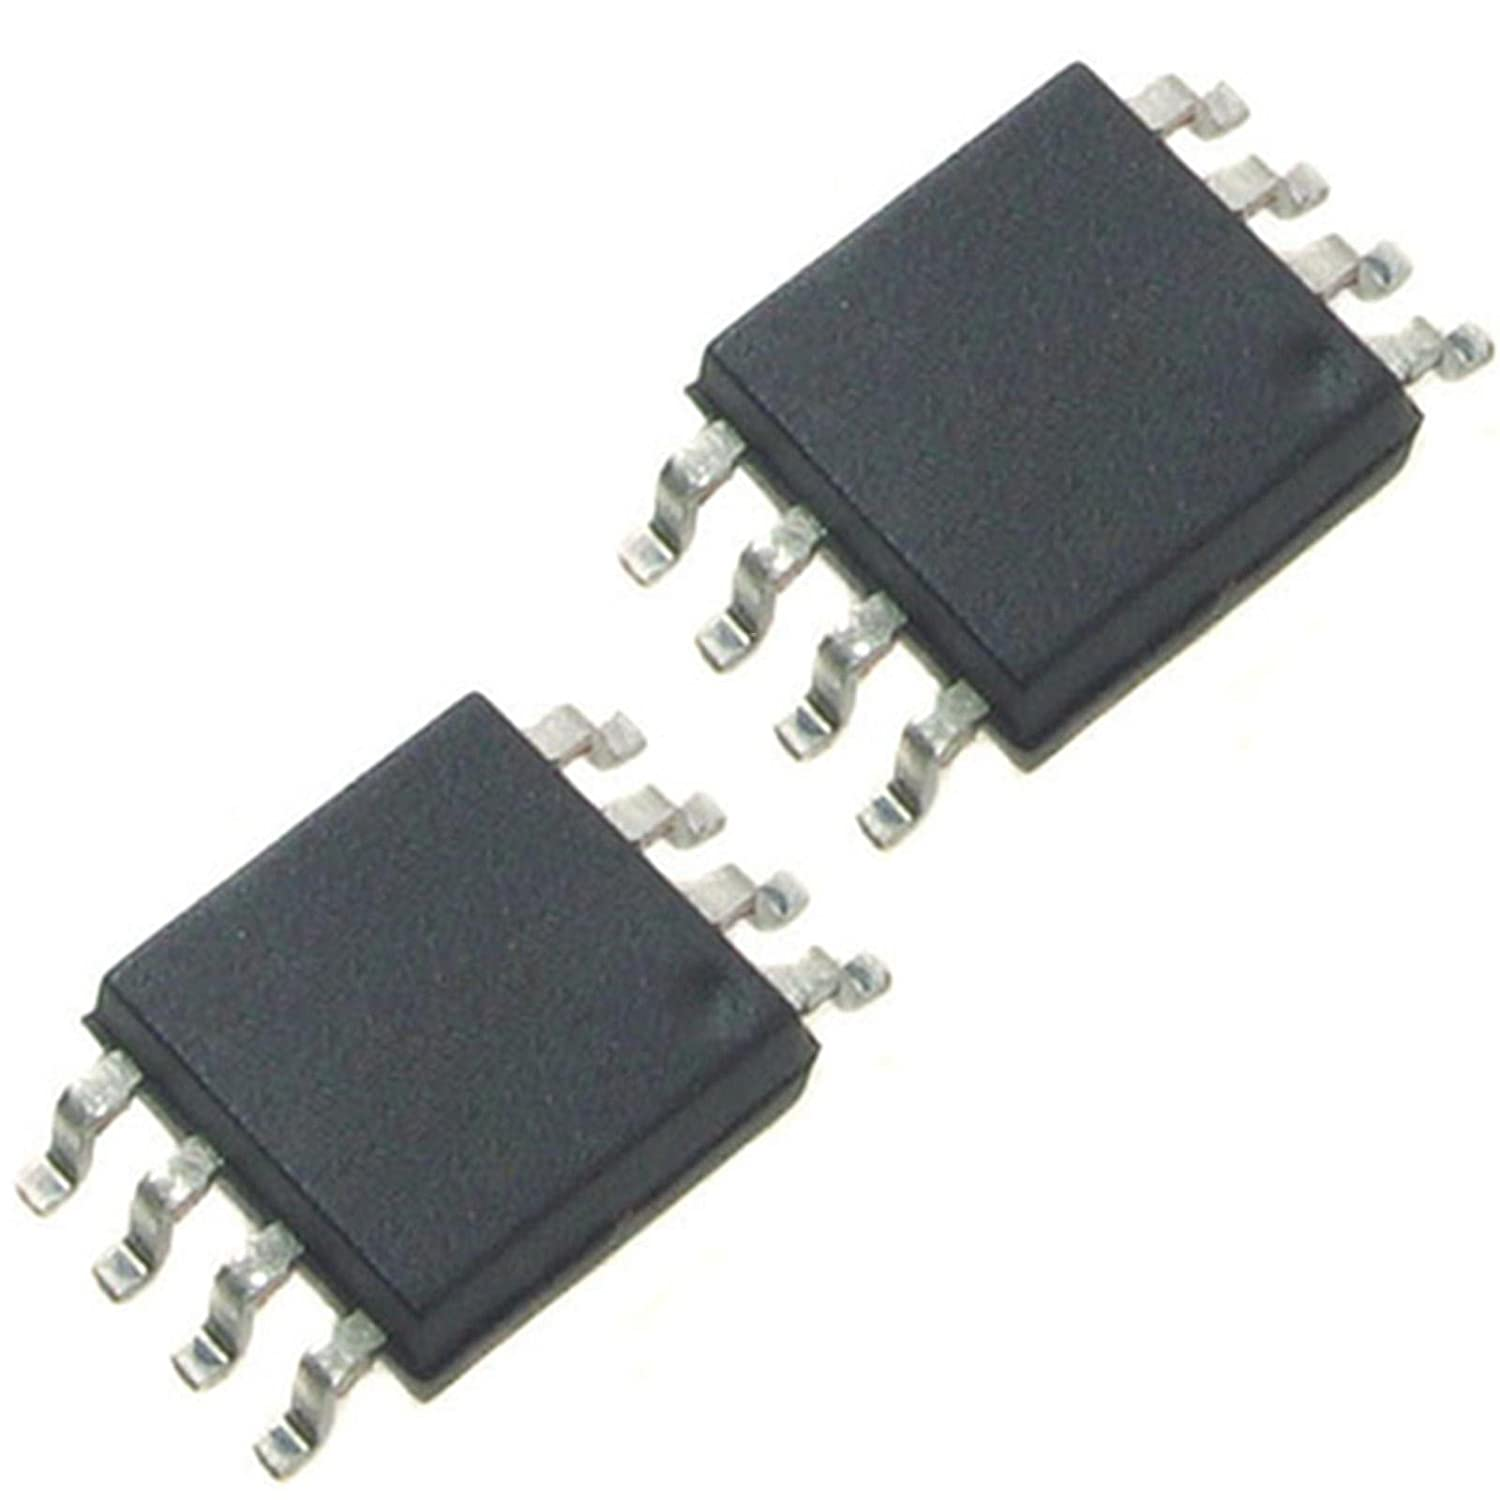 2x LM386M-1 SMD Low Voltage Audio Power Amp Amplifier LM386 IC National Semiconductor